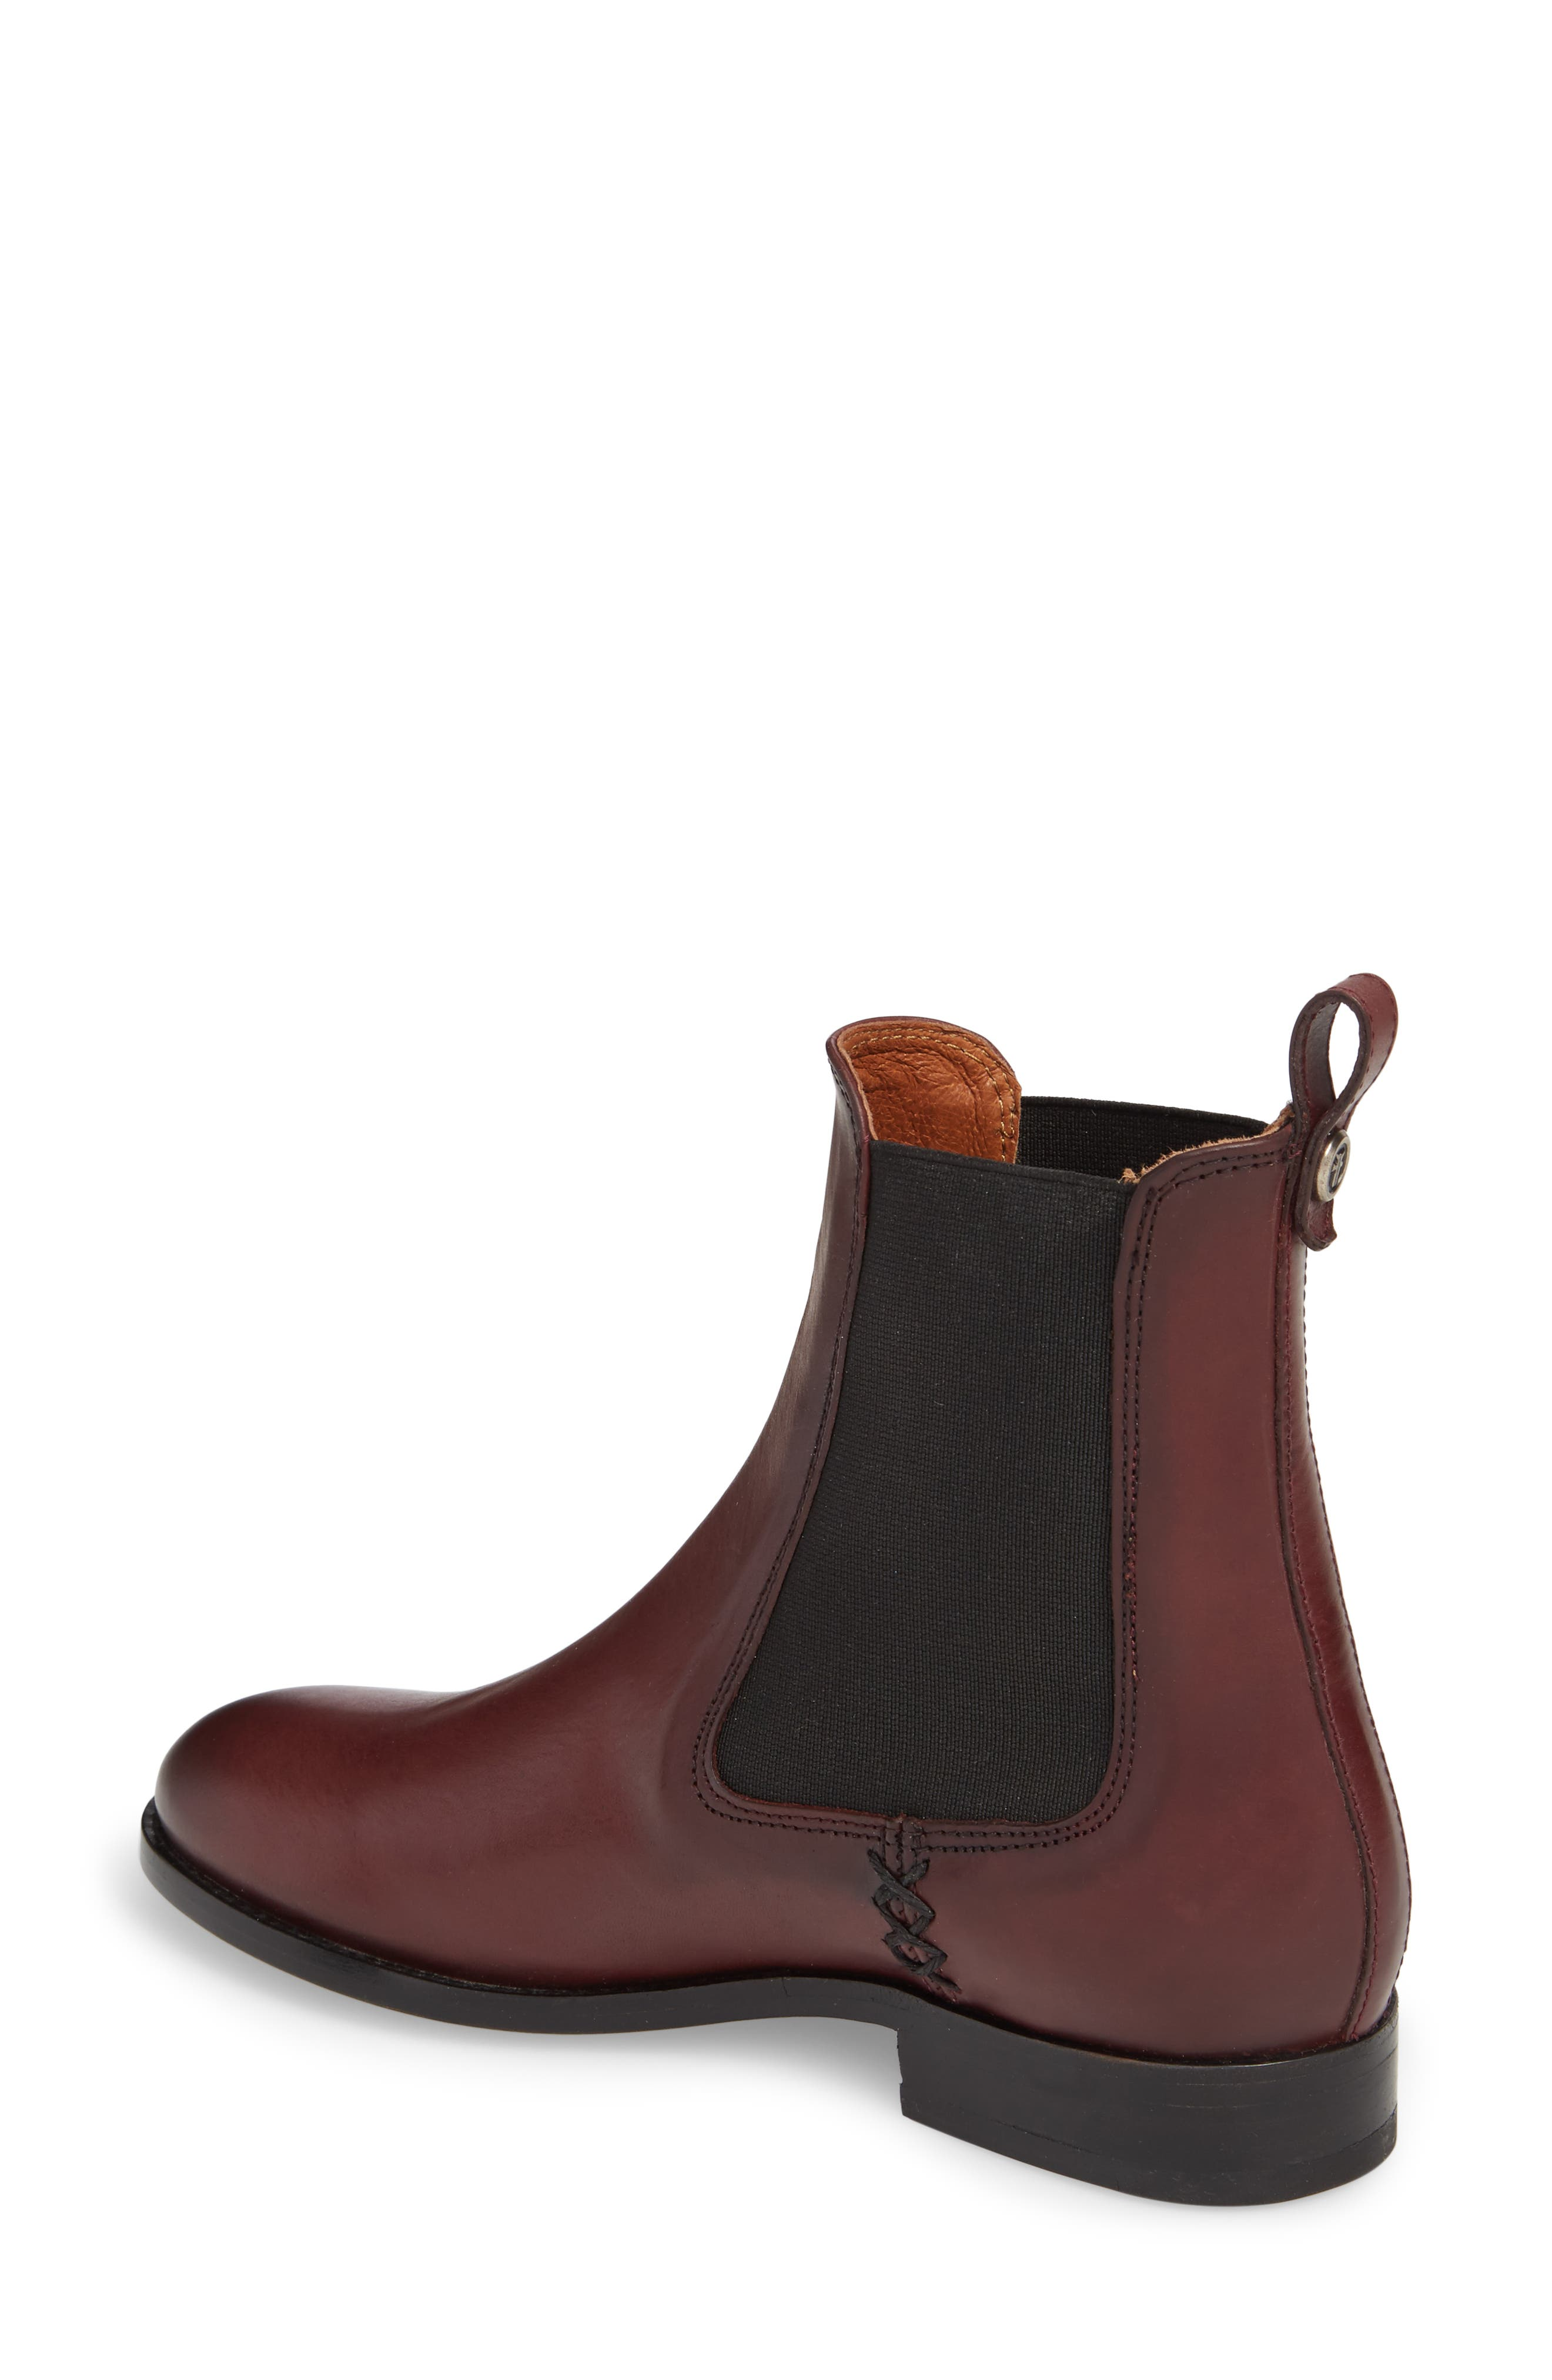 Melissa Chelsea Boot,                             Alternate thumbnail 2, color,                             930